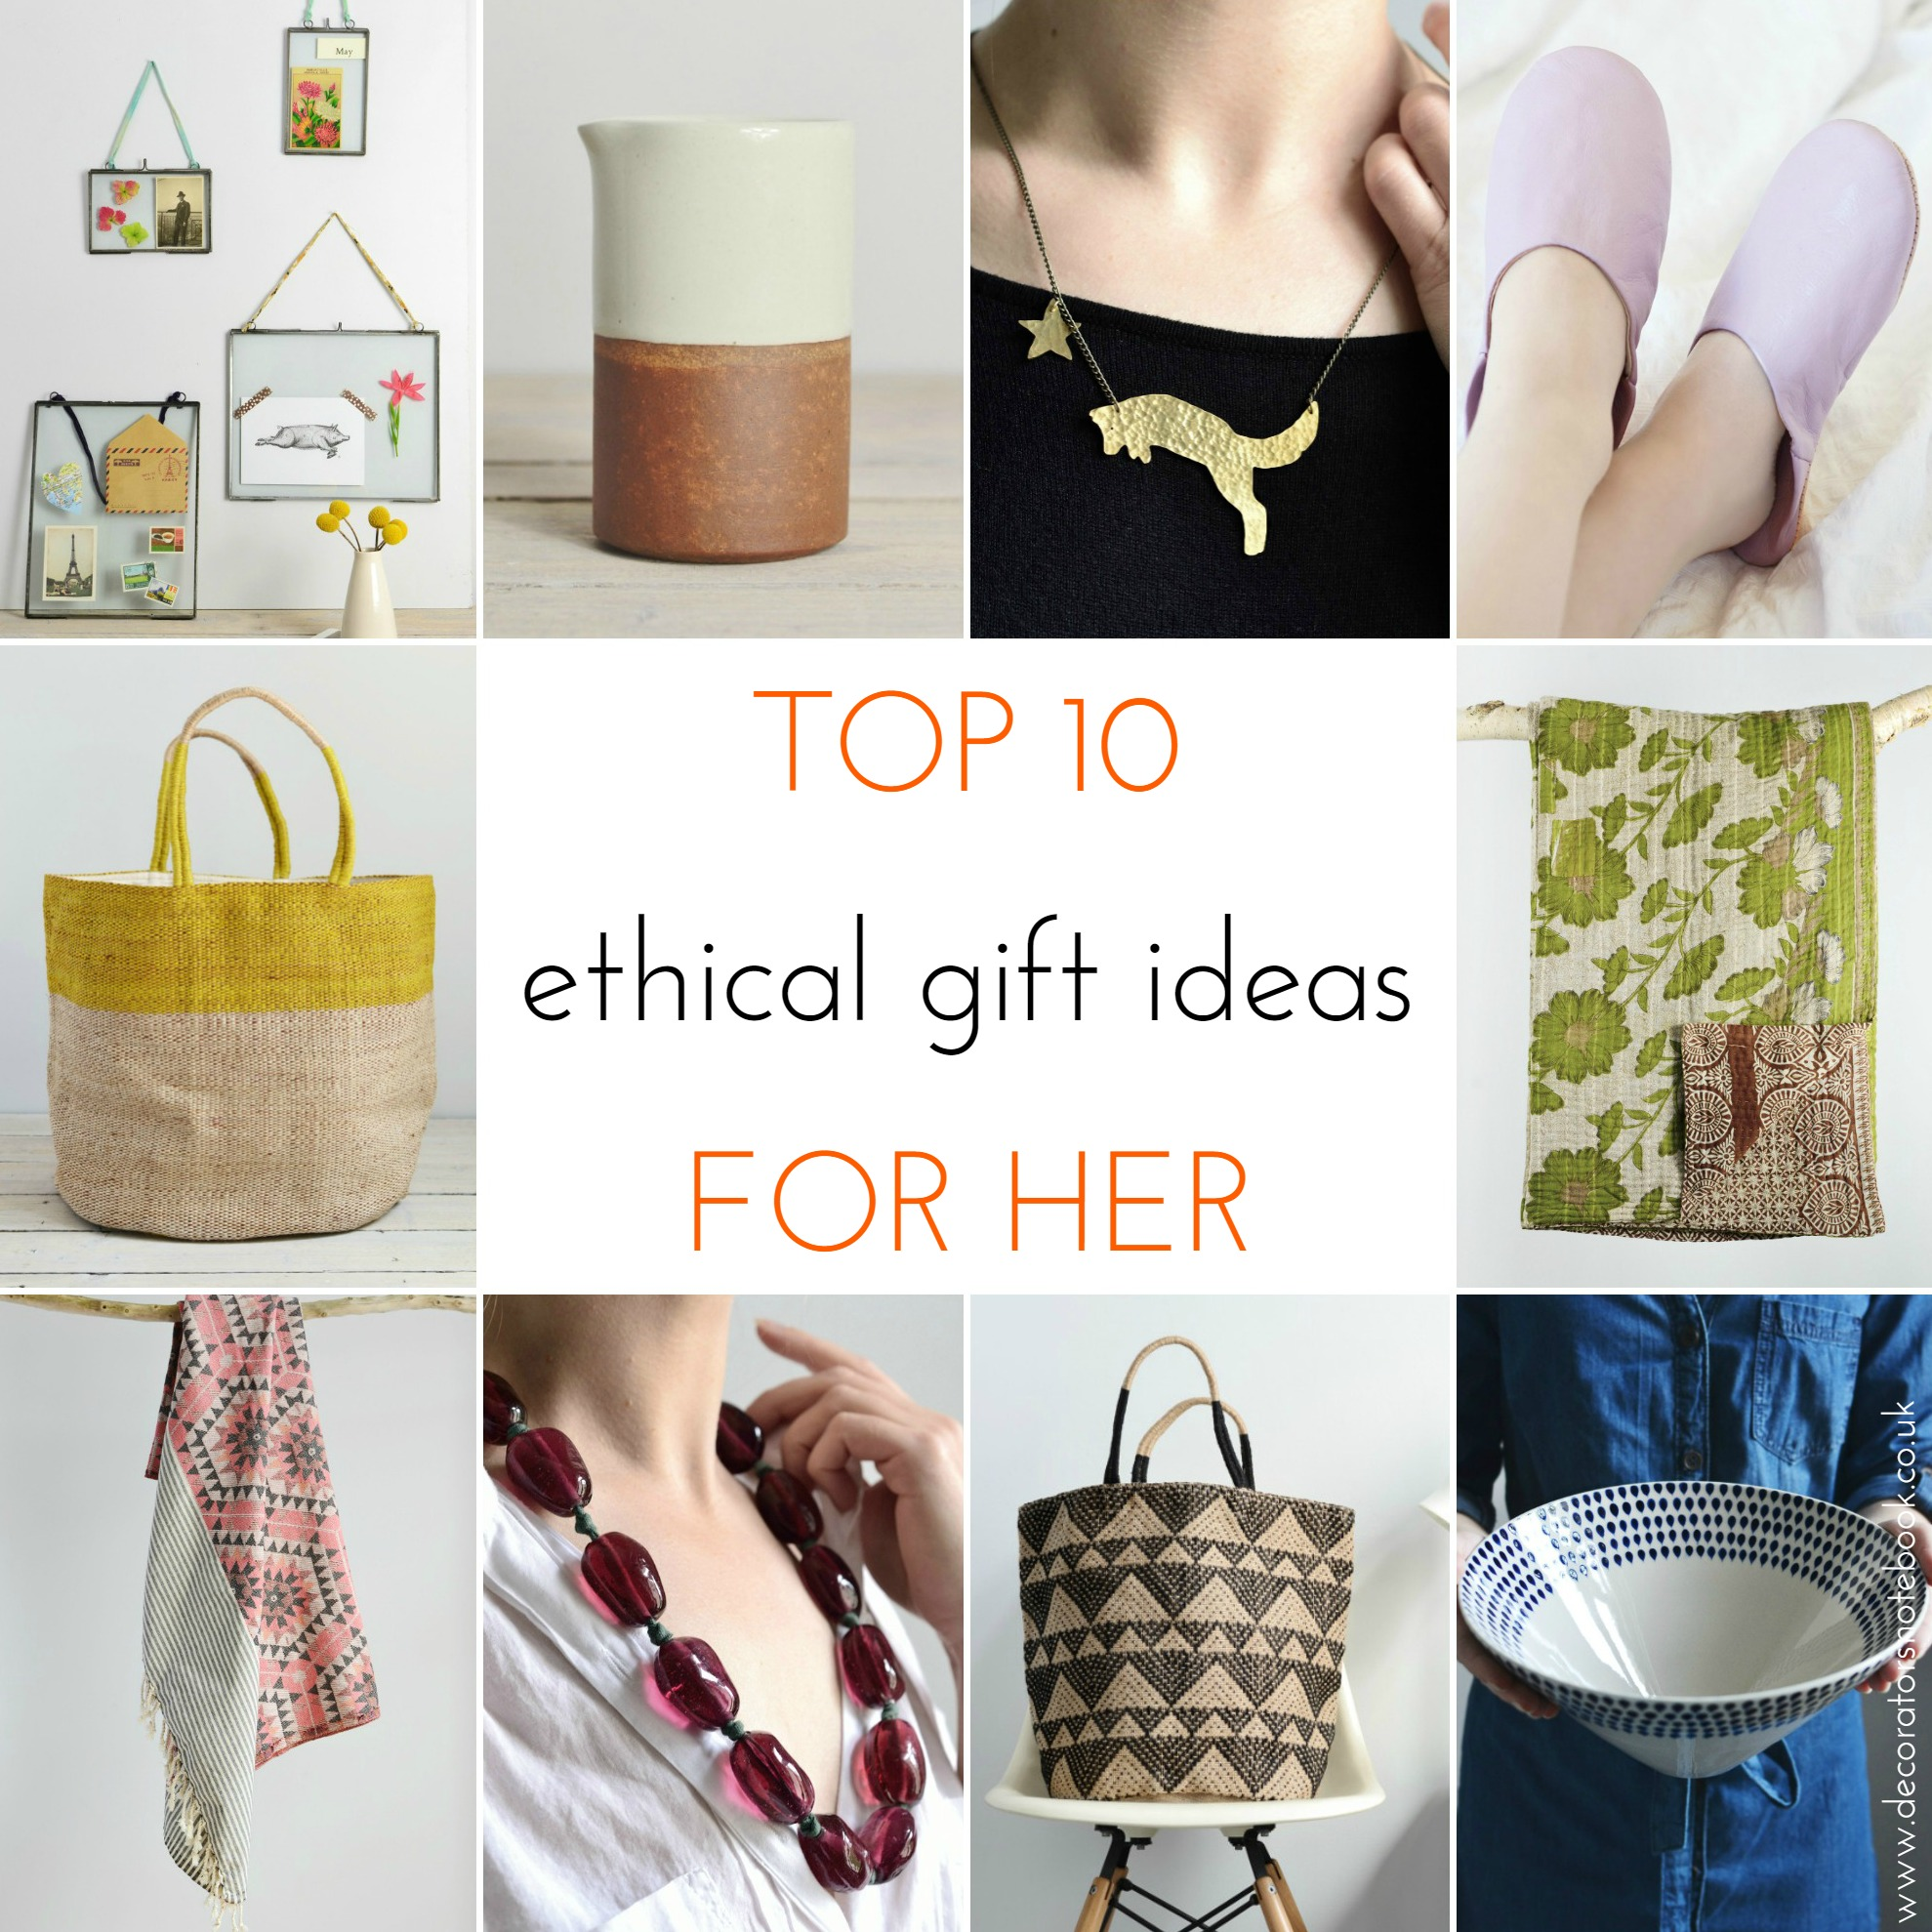 Best Gifts 2015 For Her Ethical Christmas Gift Guide 2015 Decorator 39s Notebook